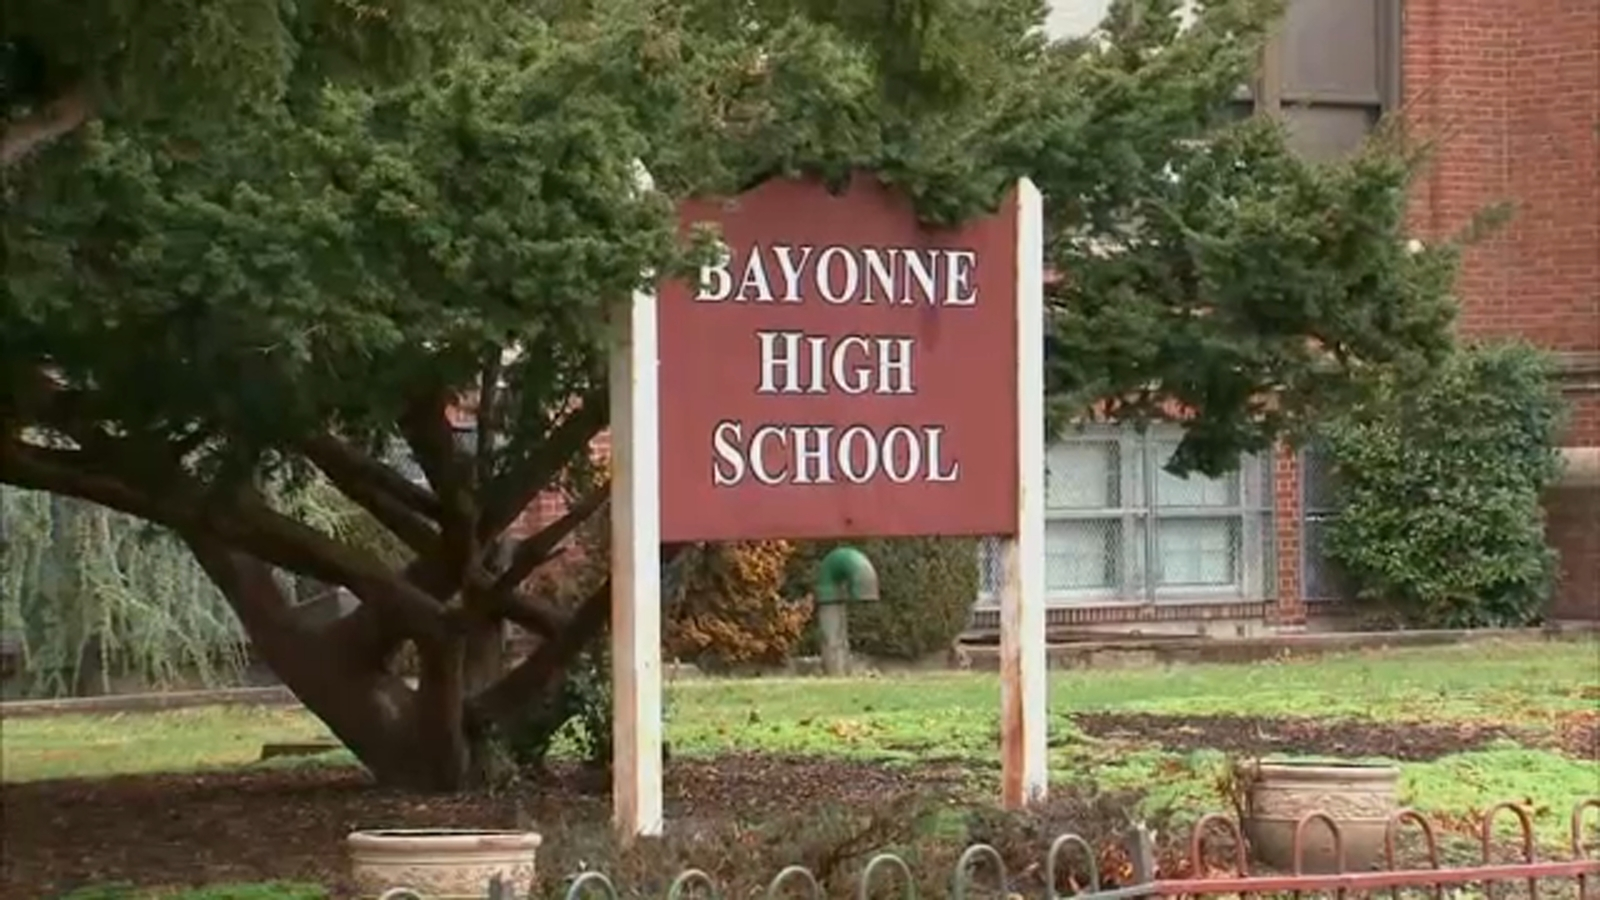 Debate over mask wearing in schools in New Jersey, even after some COVID outbreaks